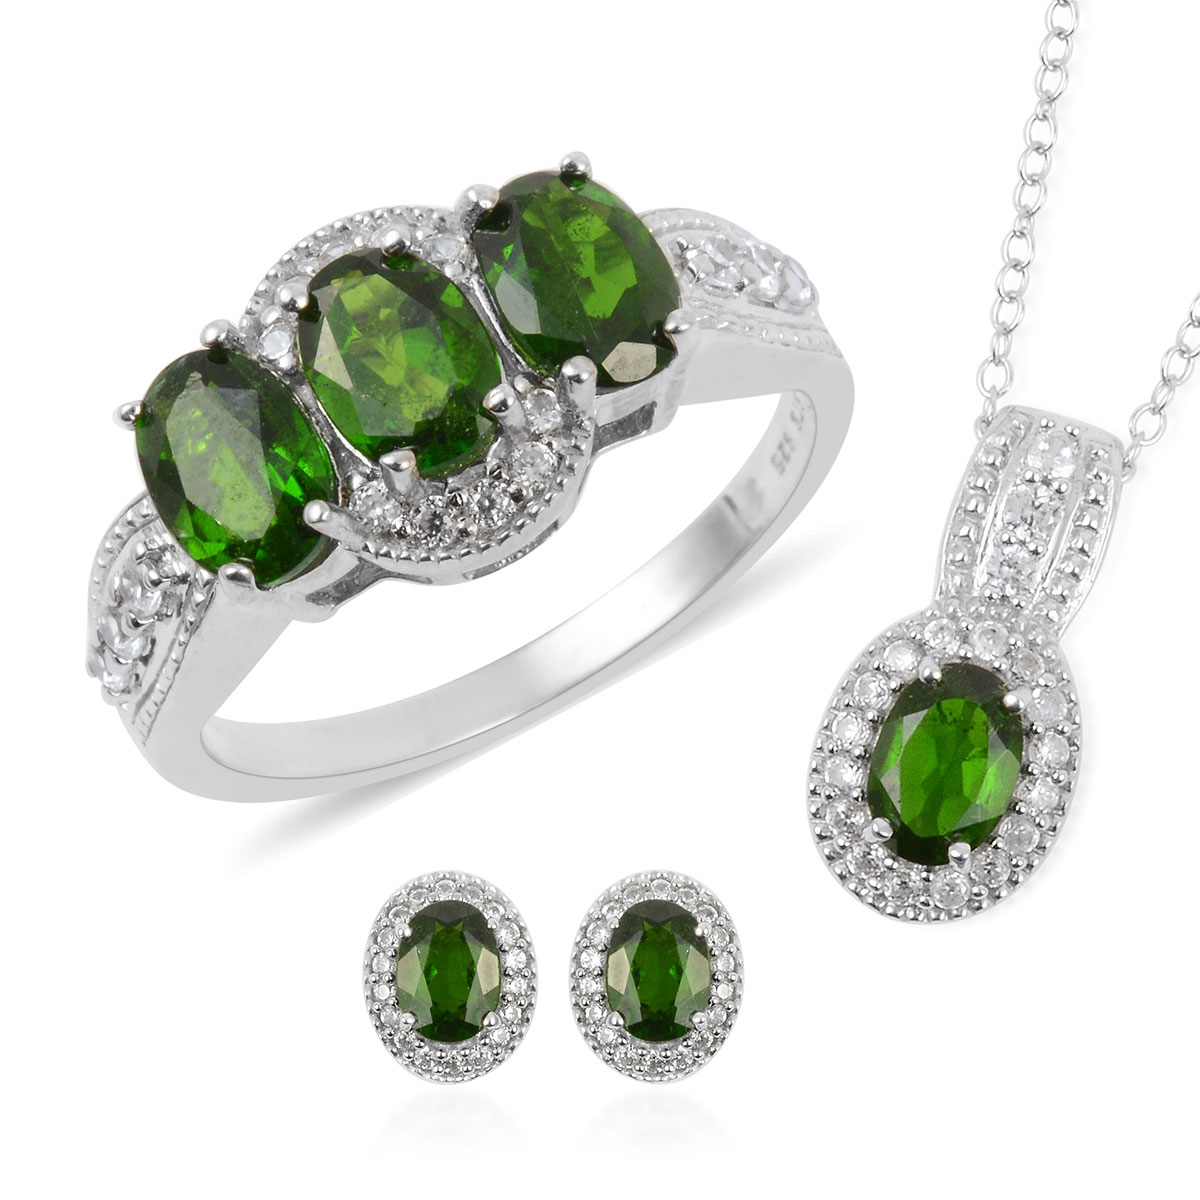 Russian Diopside, White Zircon Earrings, Ring (Size 8) and Pendant Necklace (18 in) in Platinum Over Sterling Silver 6.16 ctw